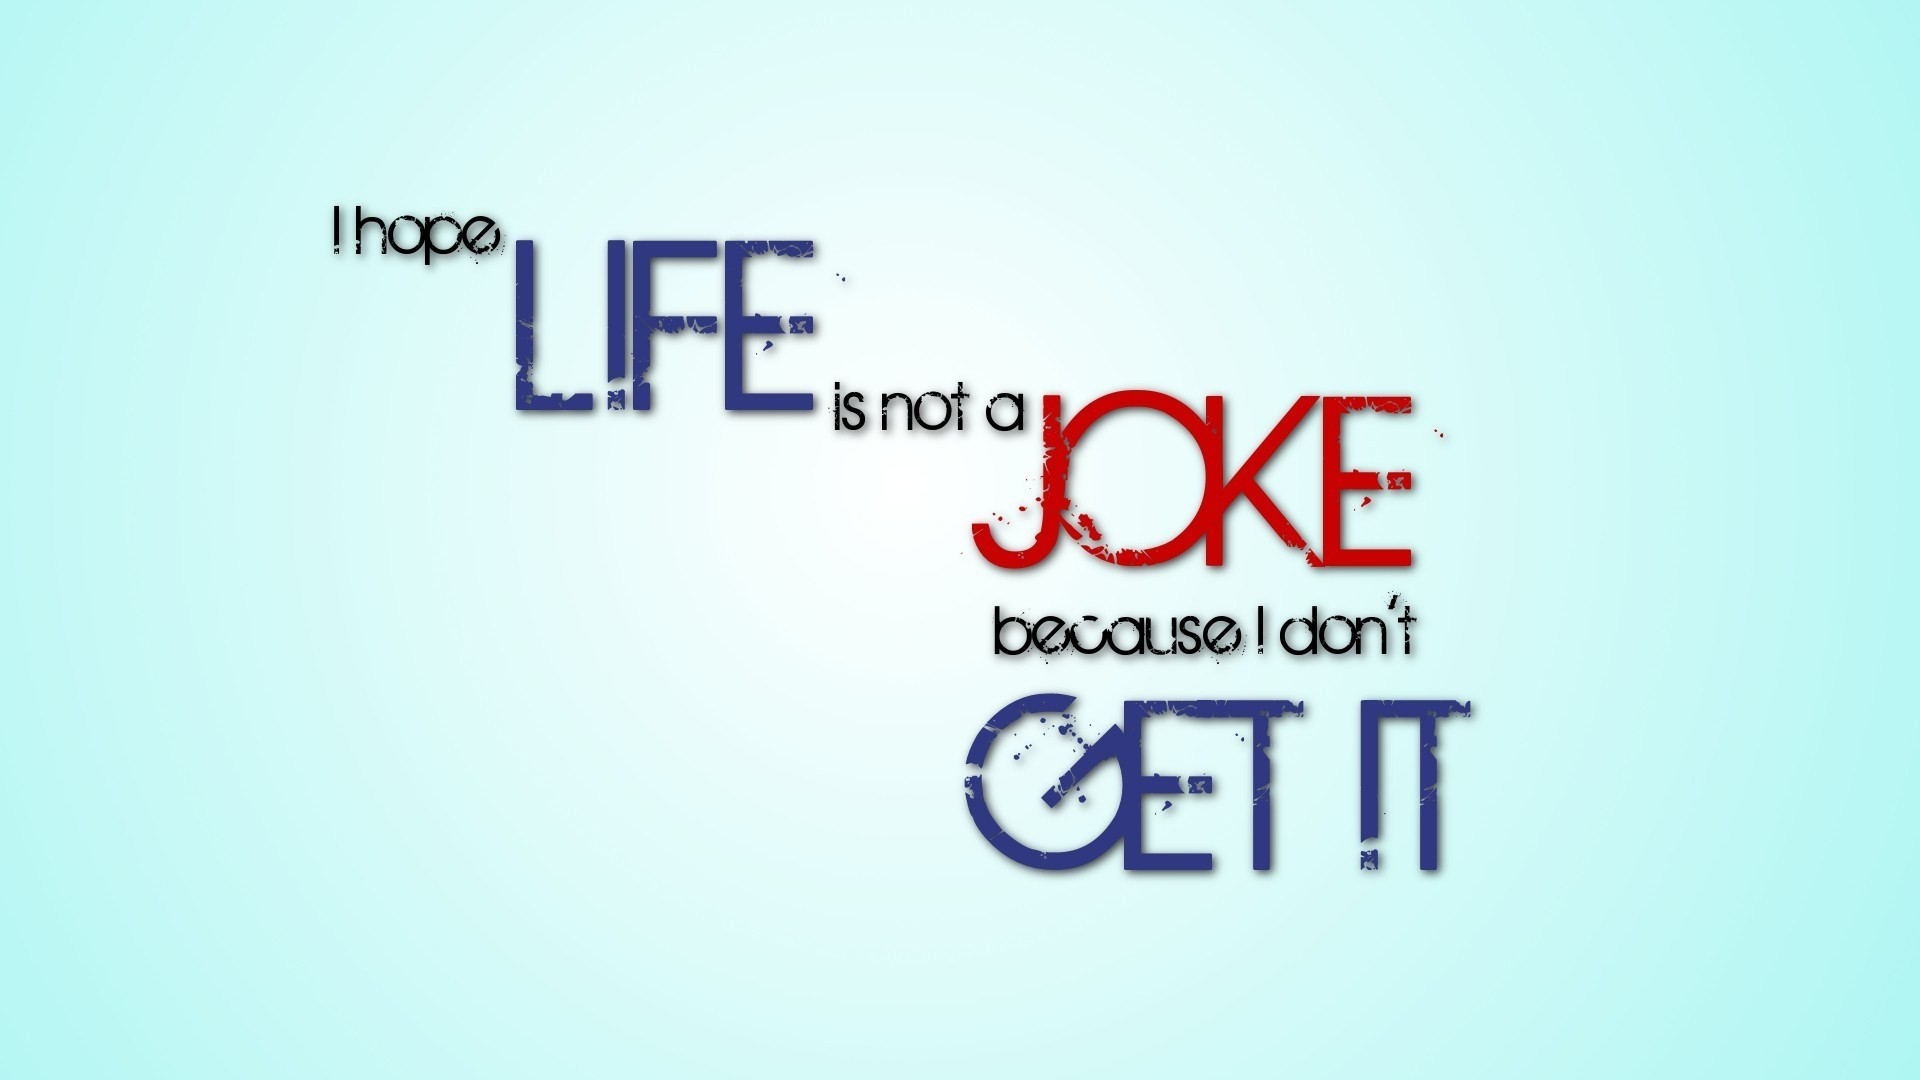 Funny quote HD wallpaper